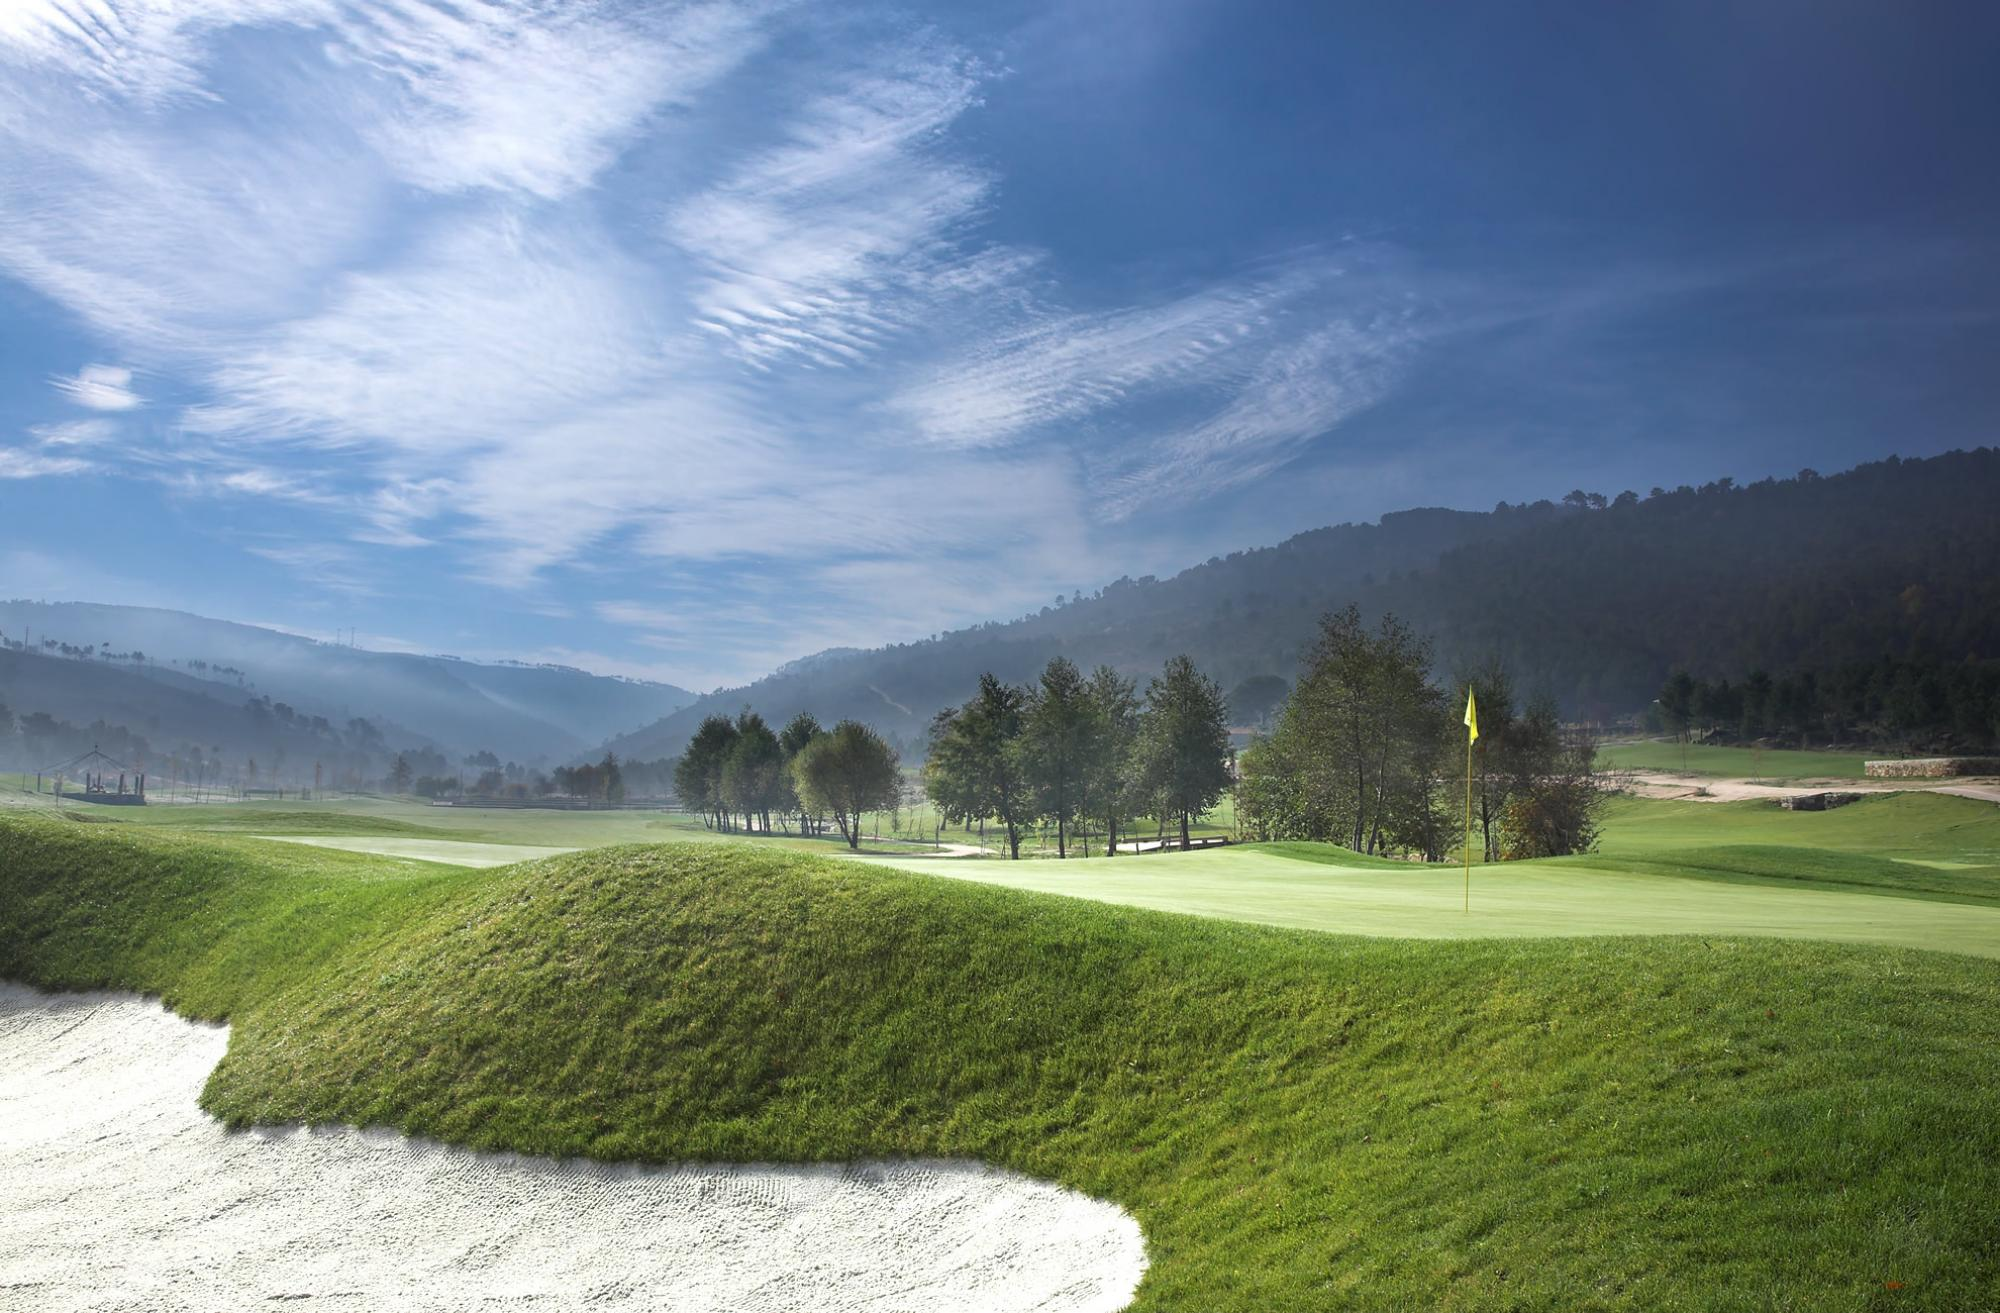 The outstanding Vidago Palace Golf Course located in Porto